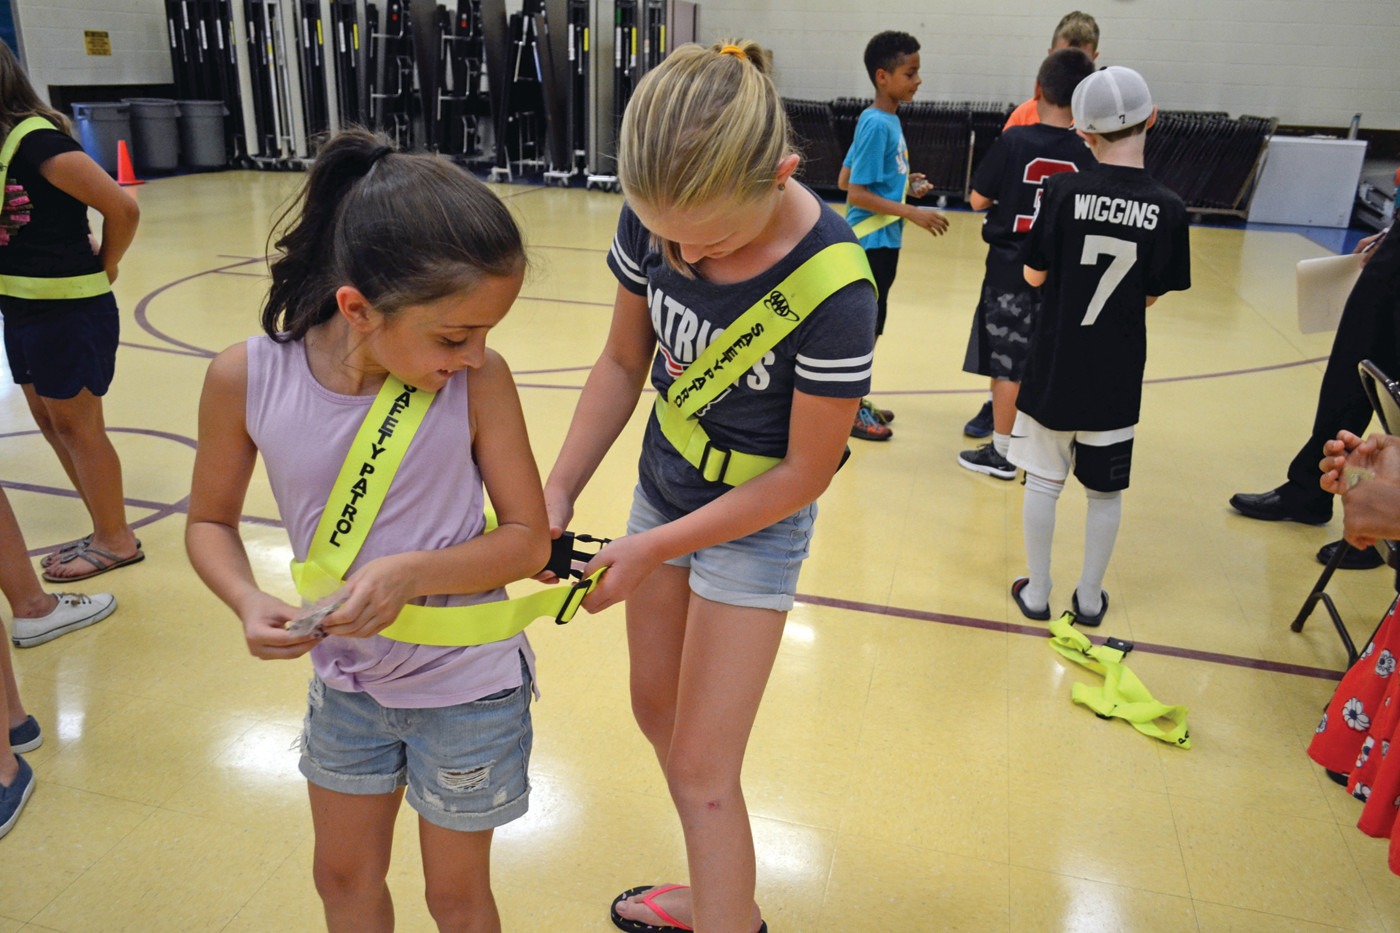 A LITTLE HELP: Cora Miller assists Madeline Pettinicchil secure her safety straps at Hoxsie after the group of 5th graders received their badges as part of the school Safety Patrol.